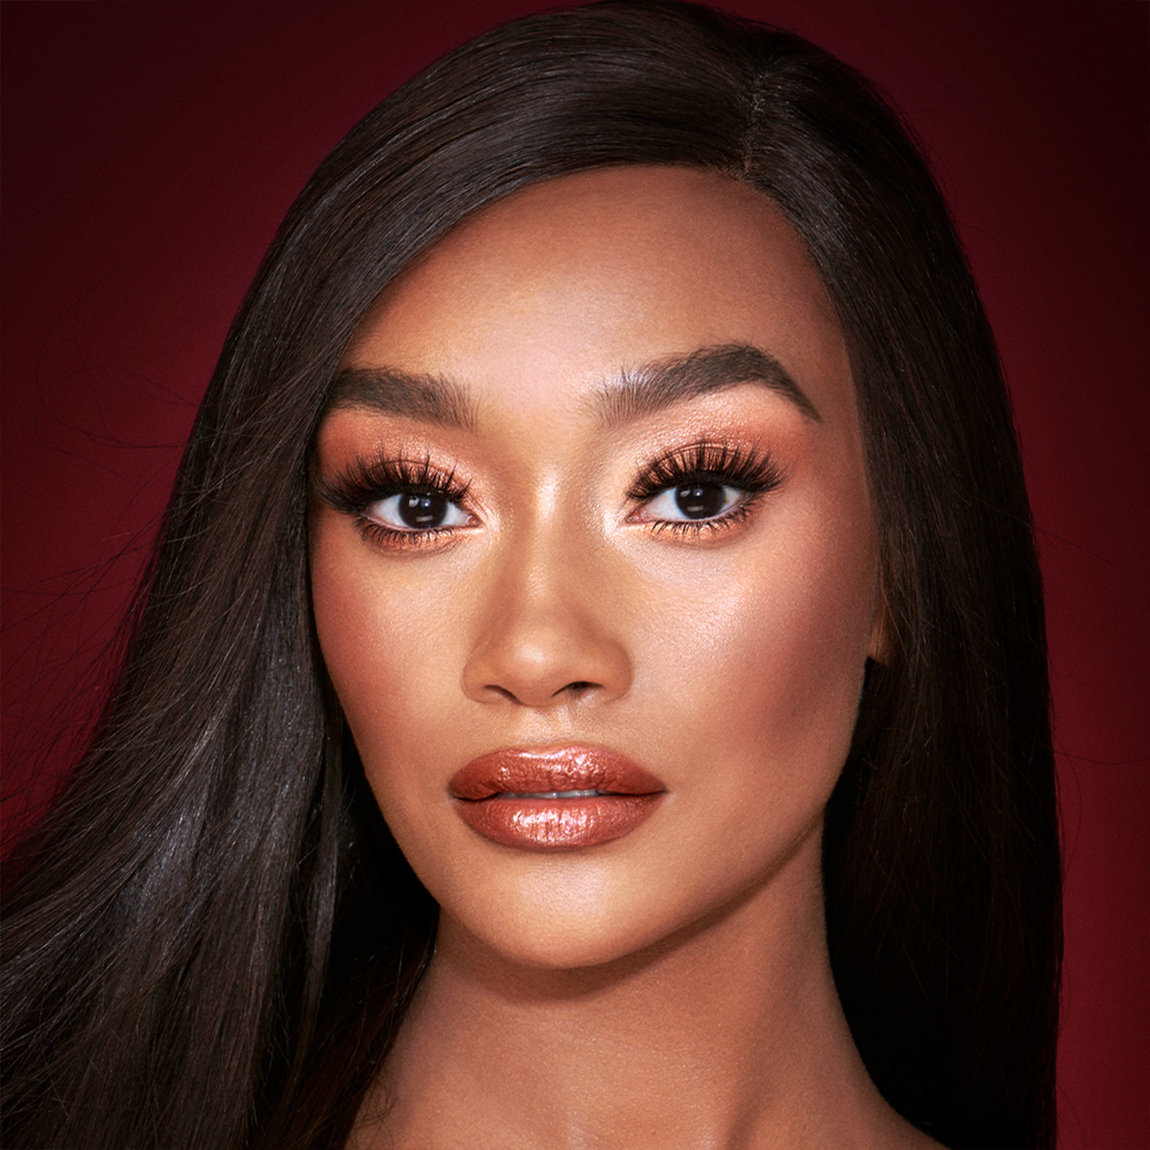 Charlotte Tilbury Get the Look The Queen Of Glow product swatch.